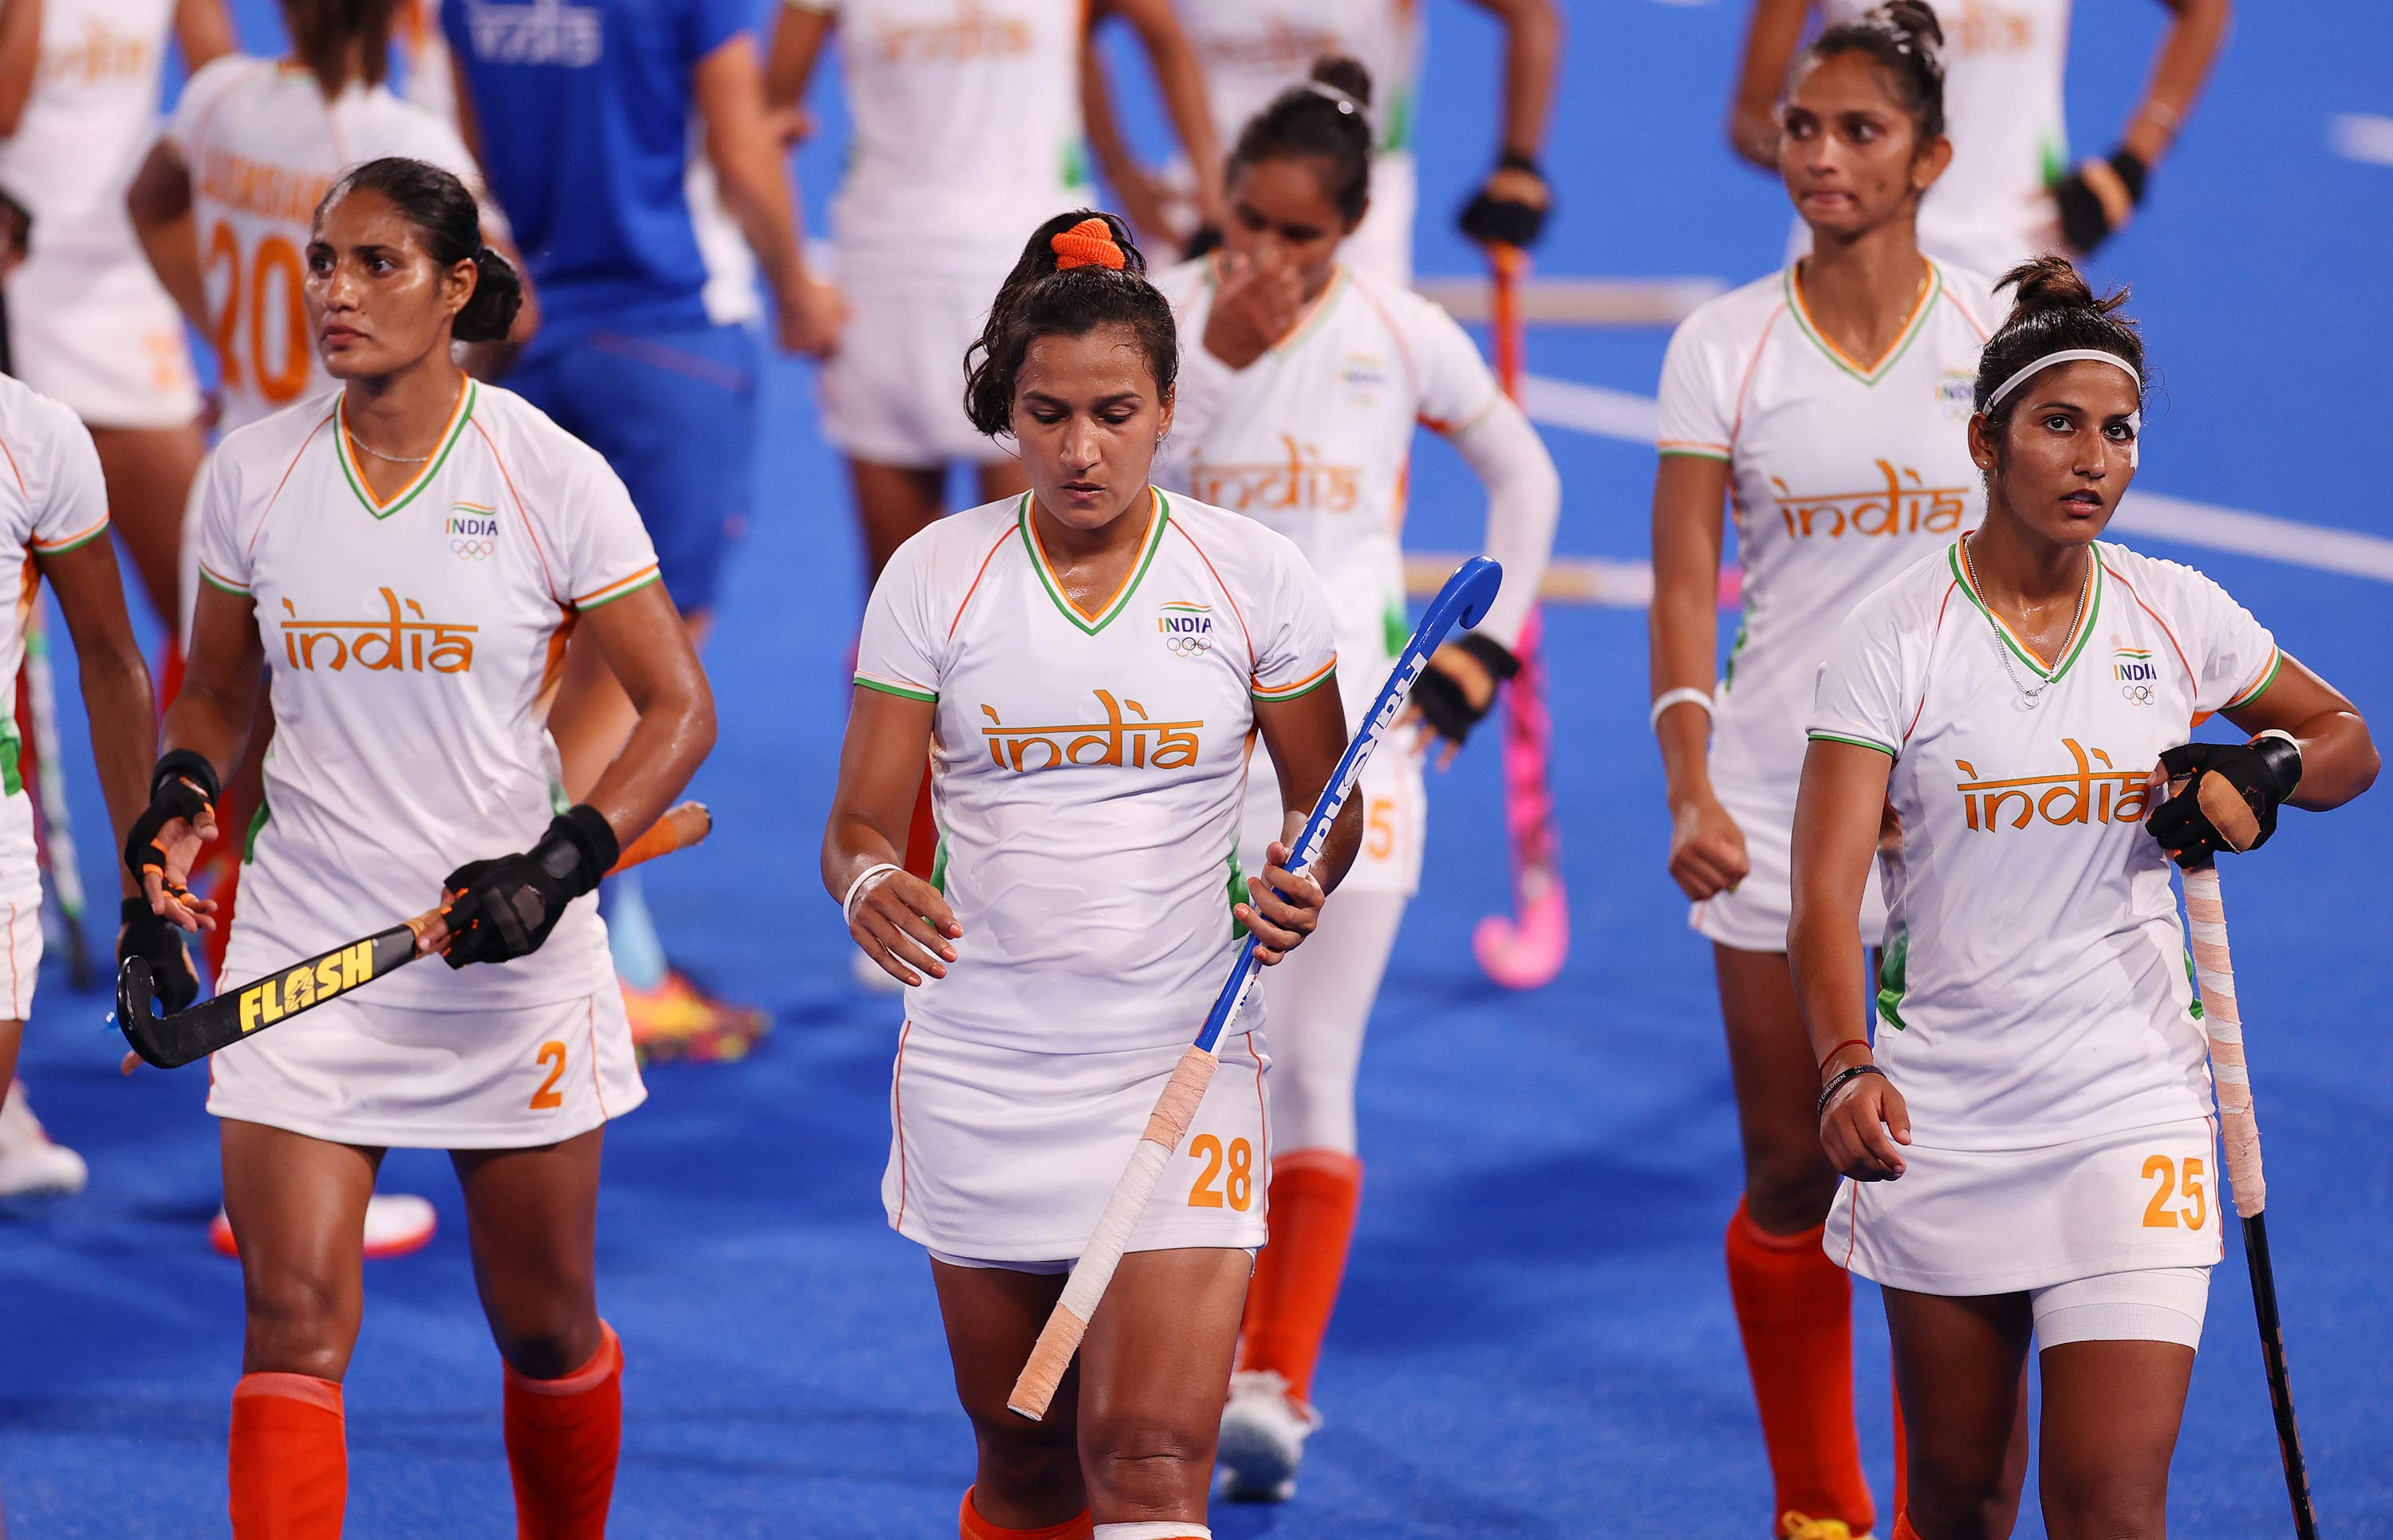 Members of India's hockey team leave the pitch following a loss in the semifinal match against Argentina  on August 4.